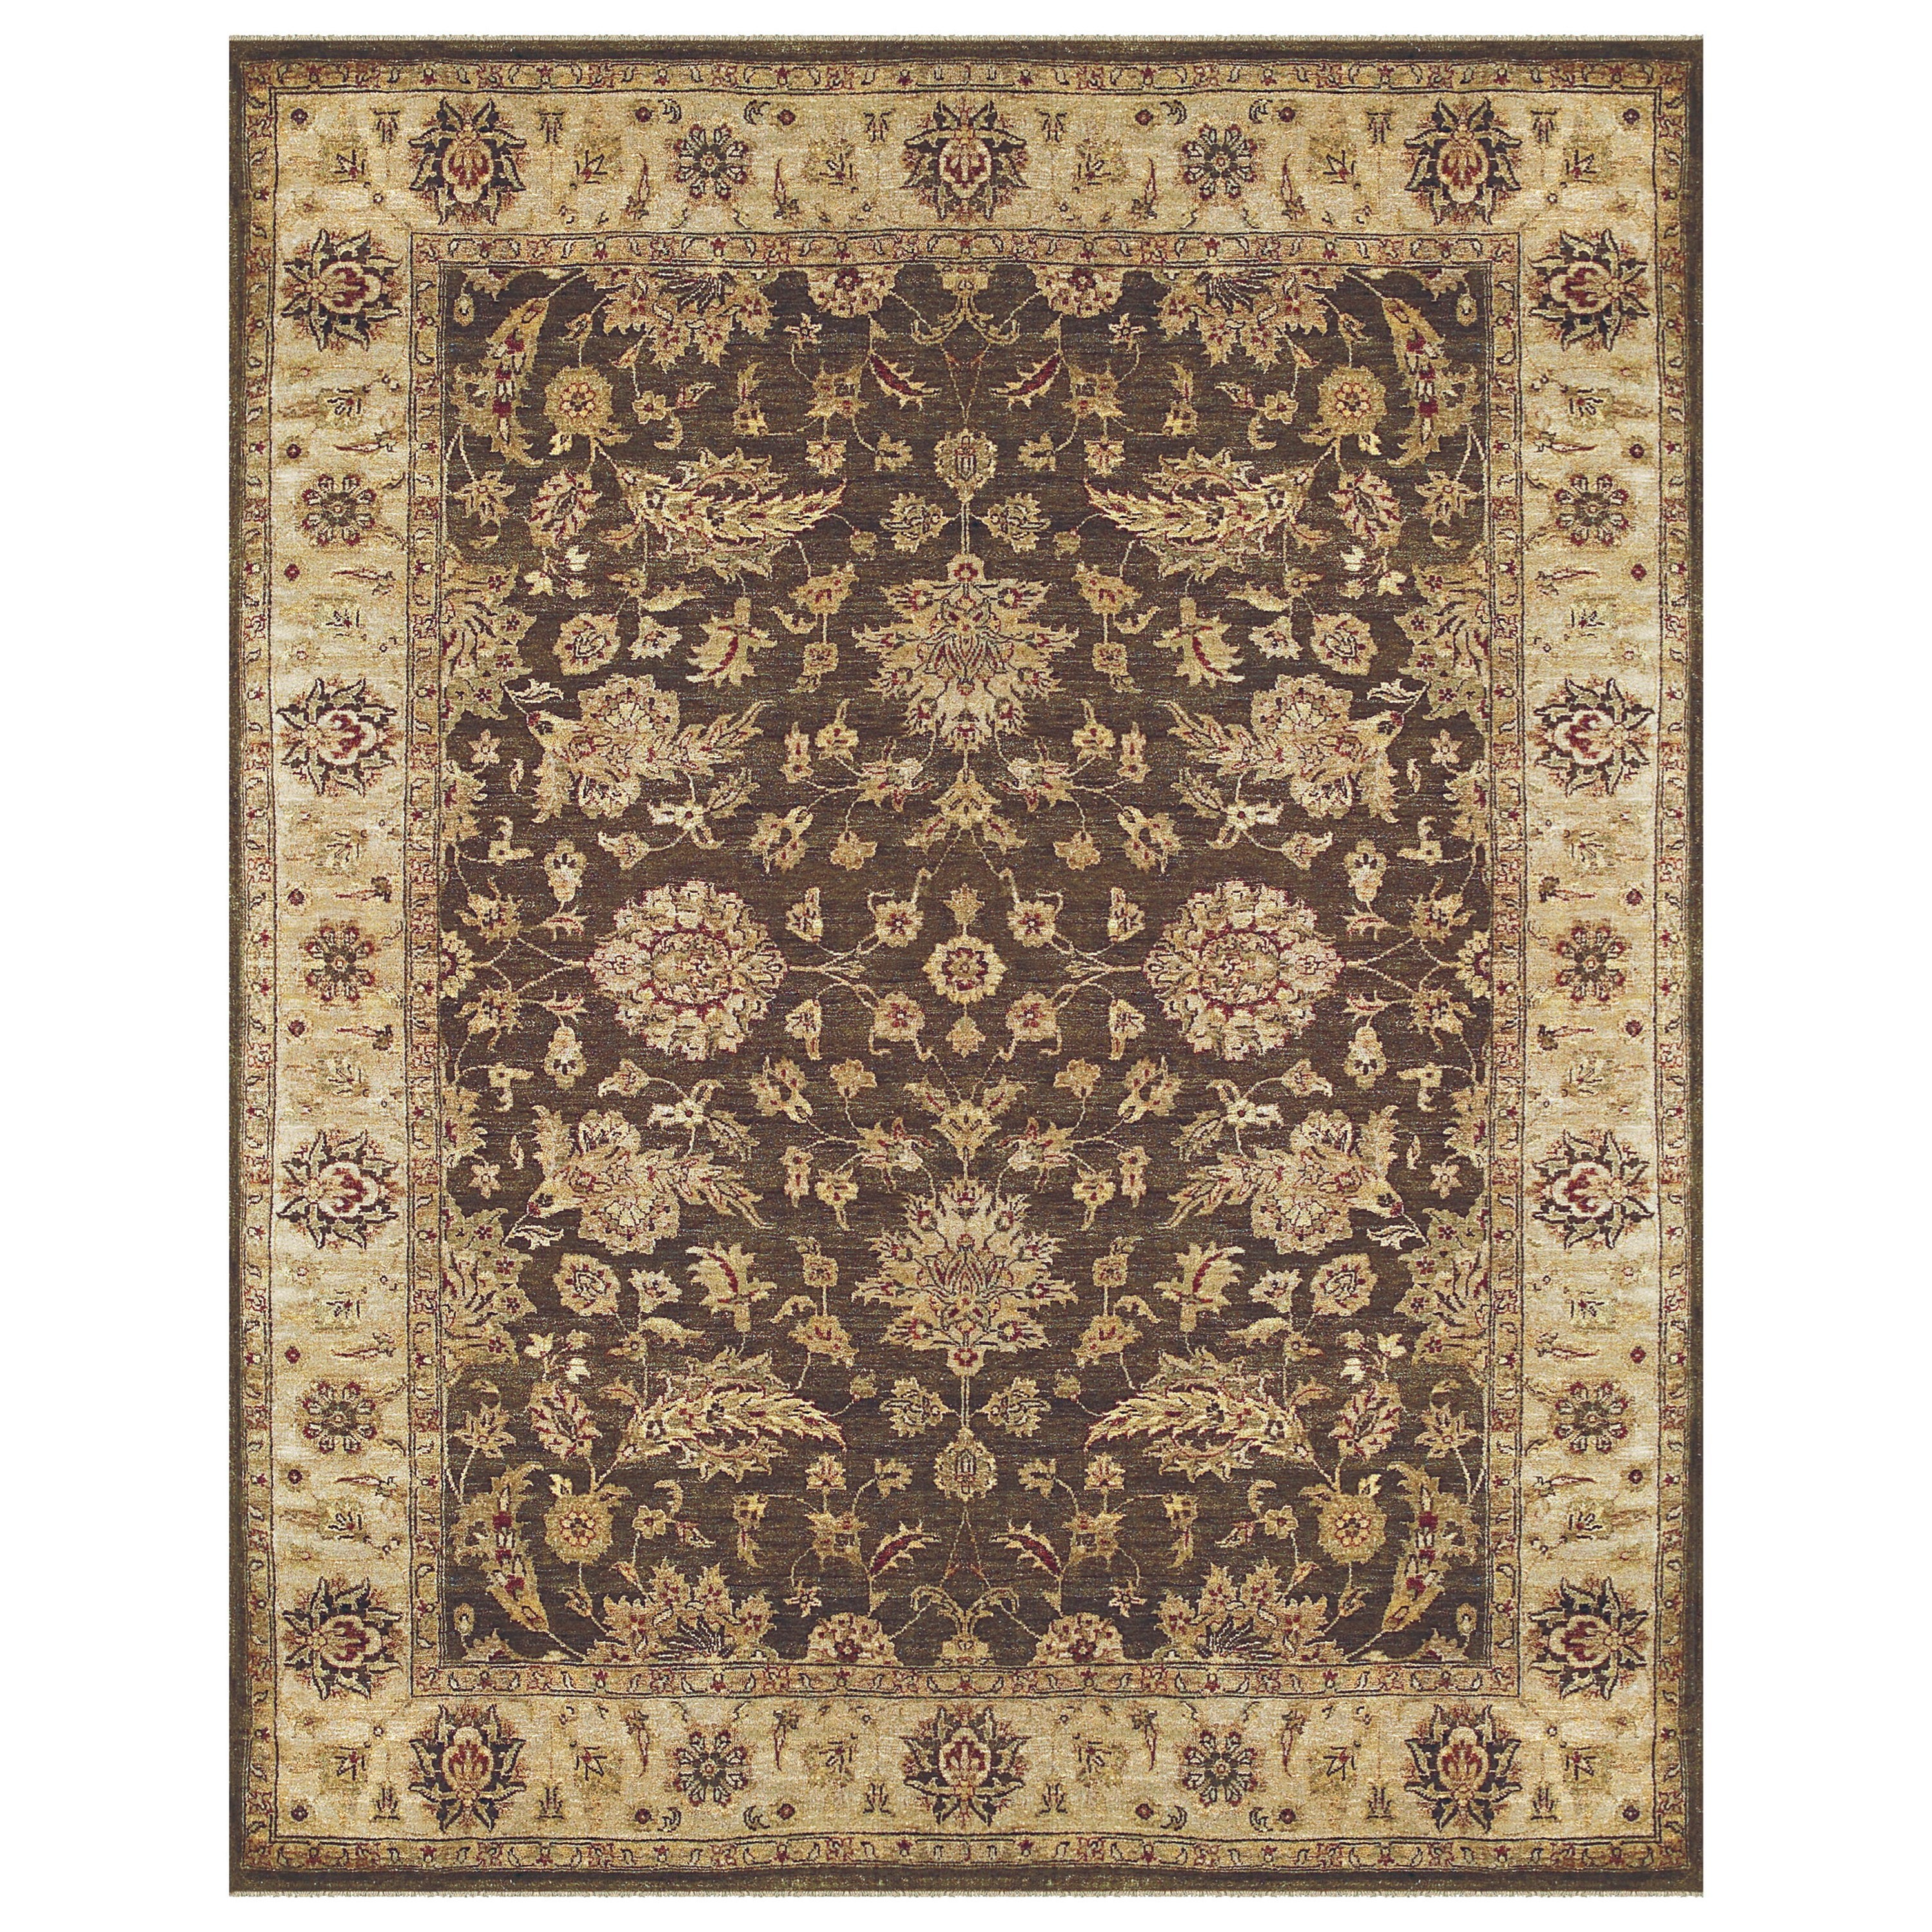 Drake Brown/Beige 4' x 6' Area Rug by Feizy Rugs at Sprintz Furniture